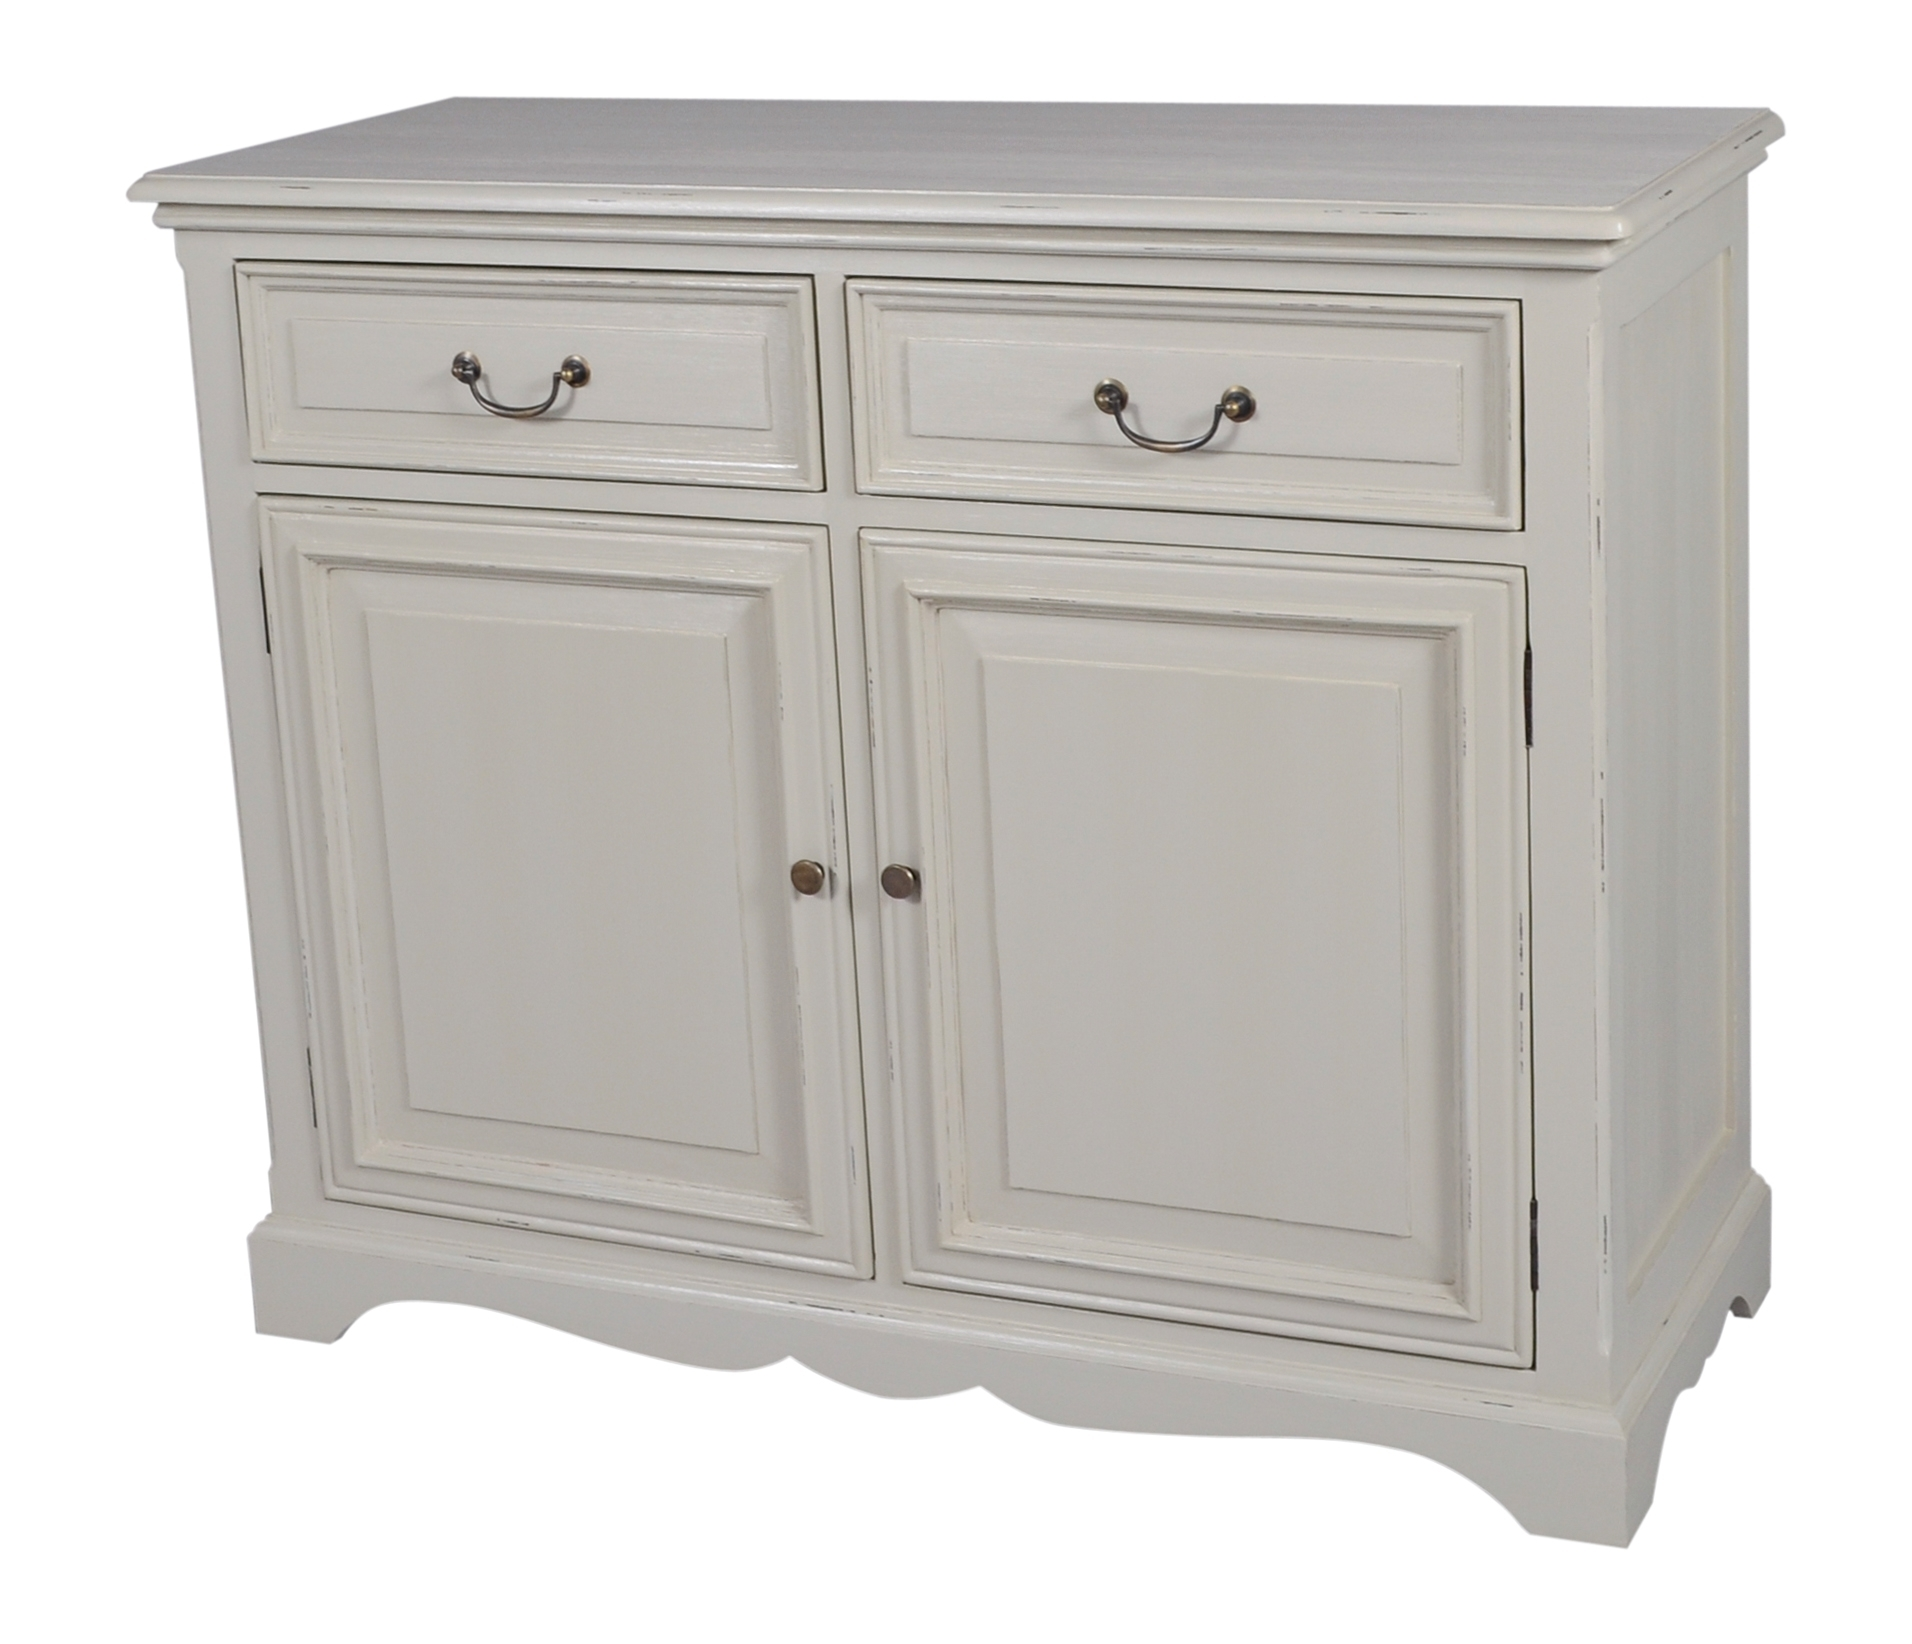 2 Door 2 Drawer Sideboard | Kelston House International throughout 2-Door Mirror Front Sideboards (Image 2 of 30)